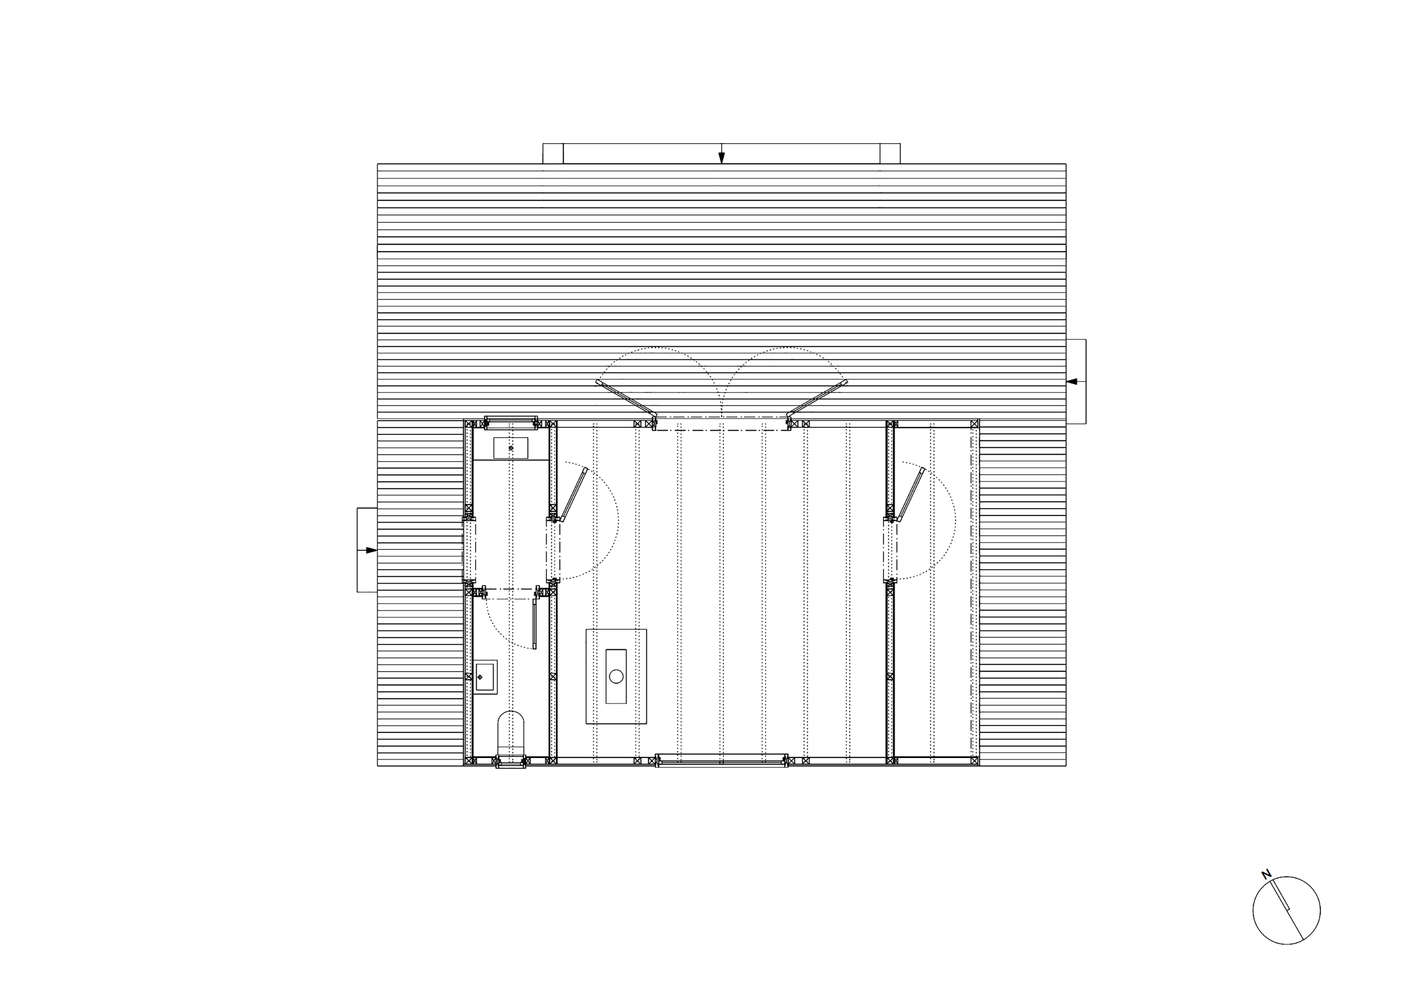 woodland cabin in belgium floor plan, designed and built by london architecture 19